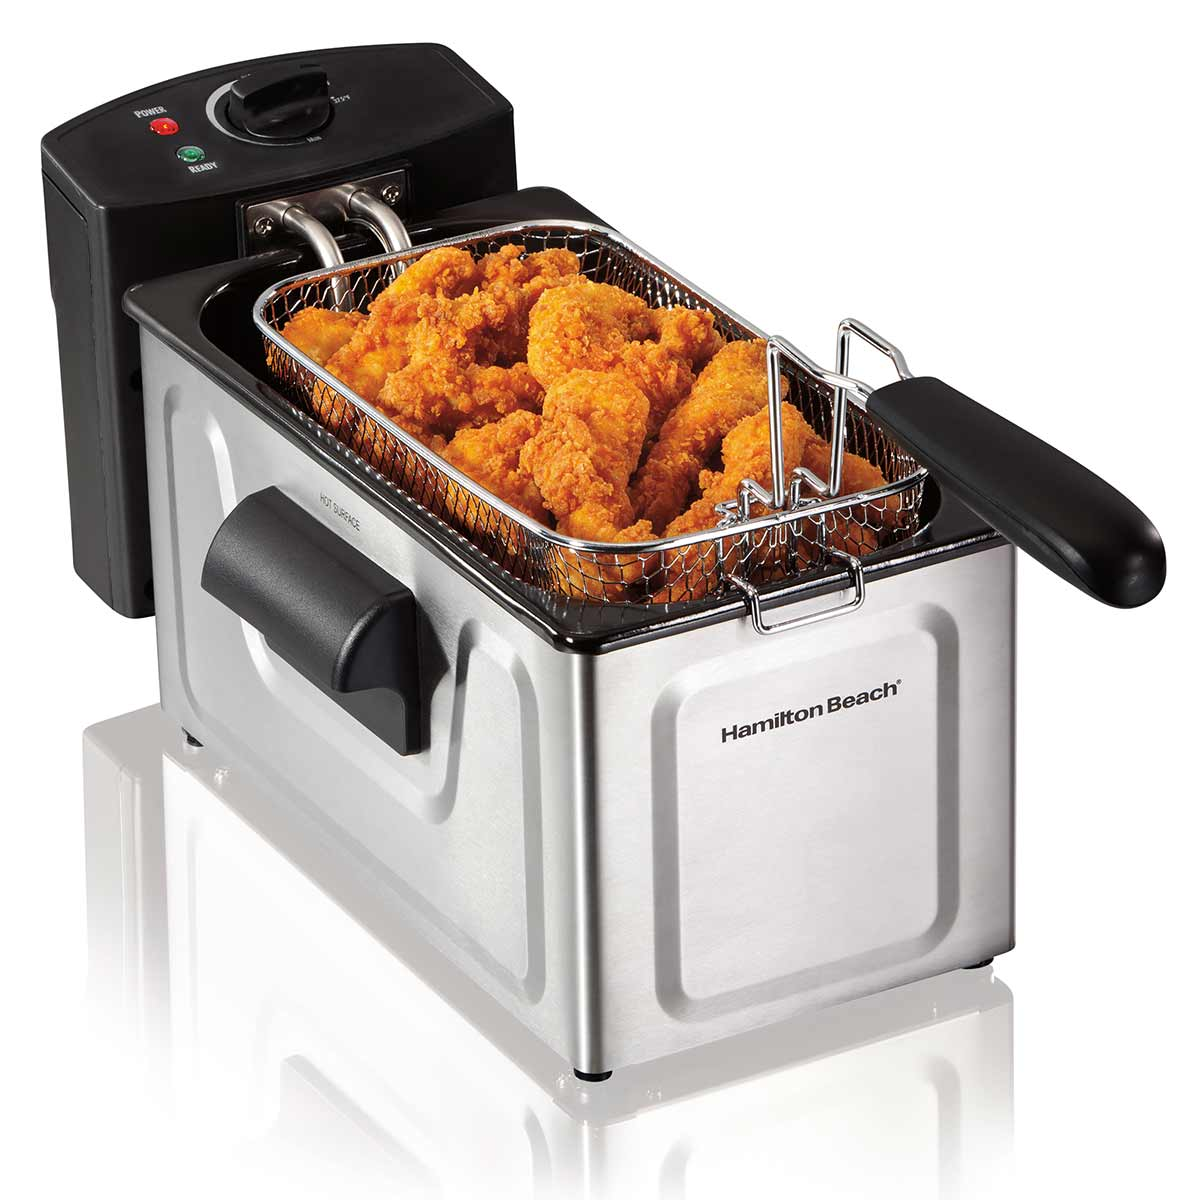 Deep Fryer, 1.9 Liter/8 Cup Oil Capacity with Immersed Heating Element (35325)